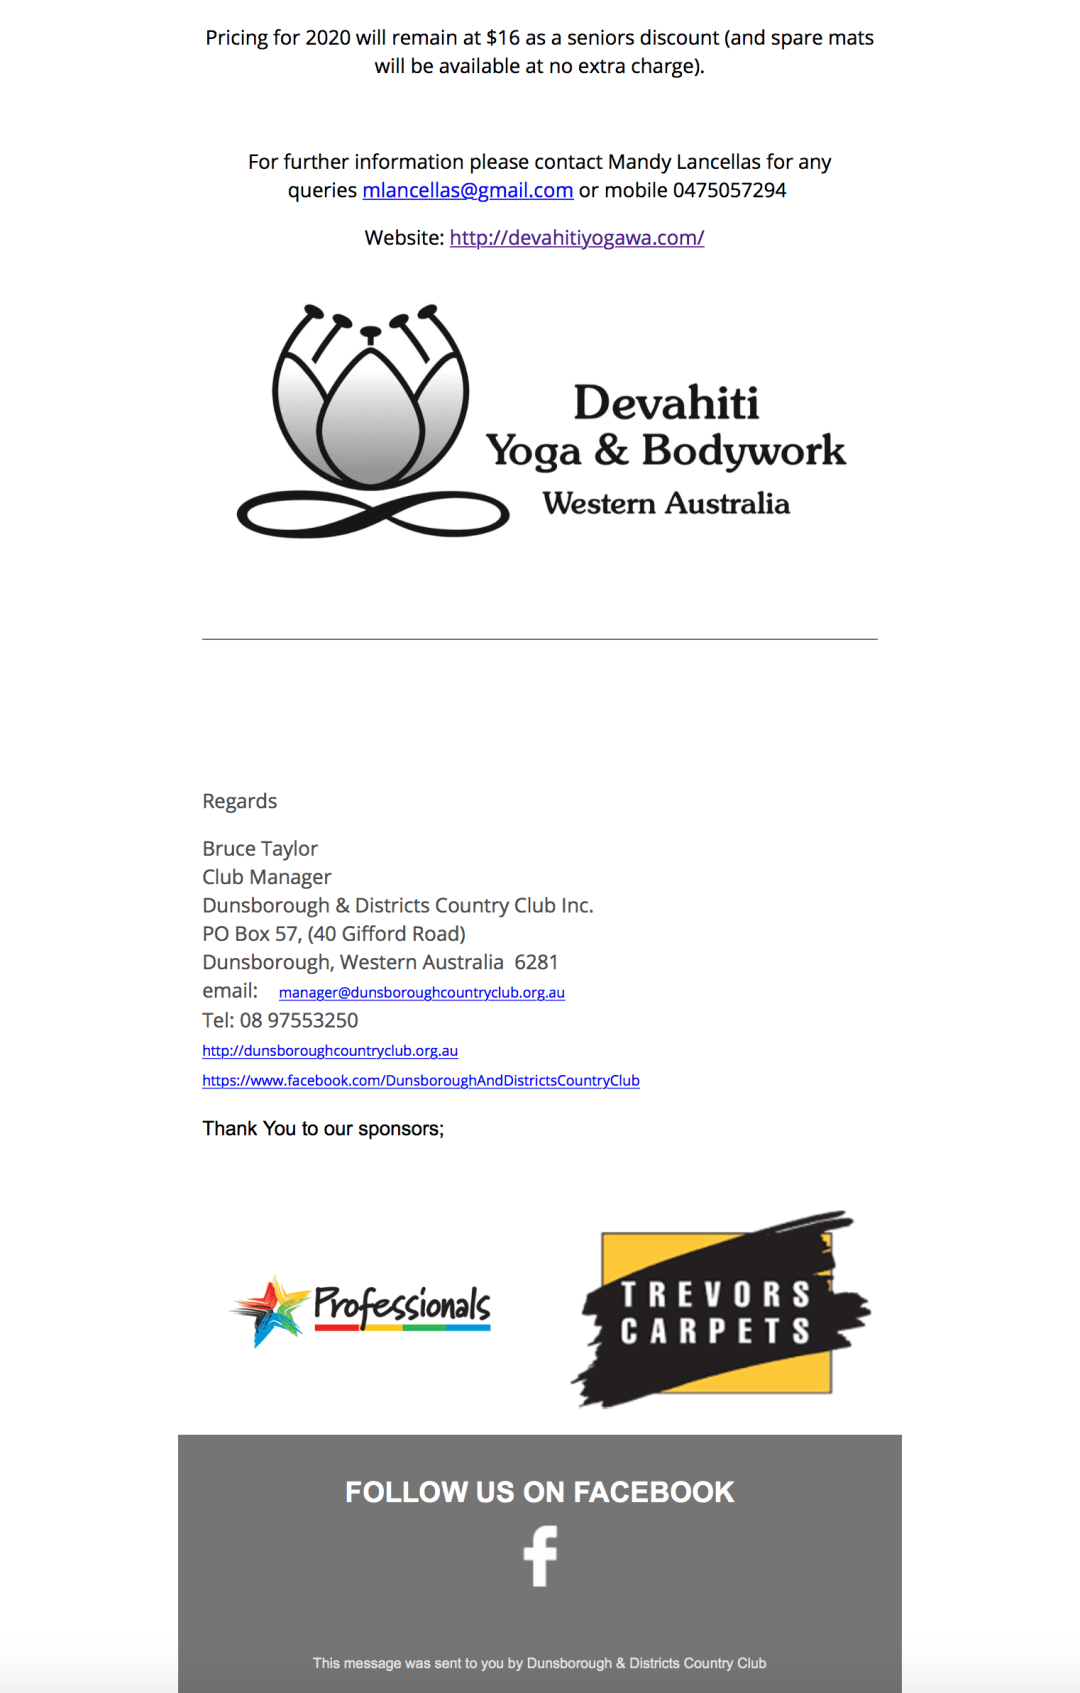 Dunsborough Country Club Newsletter